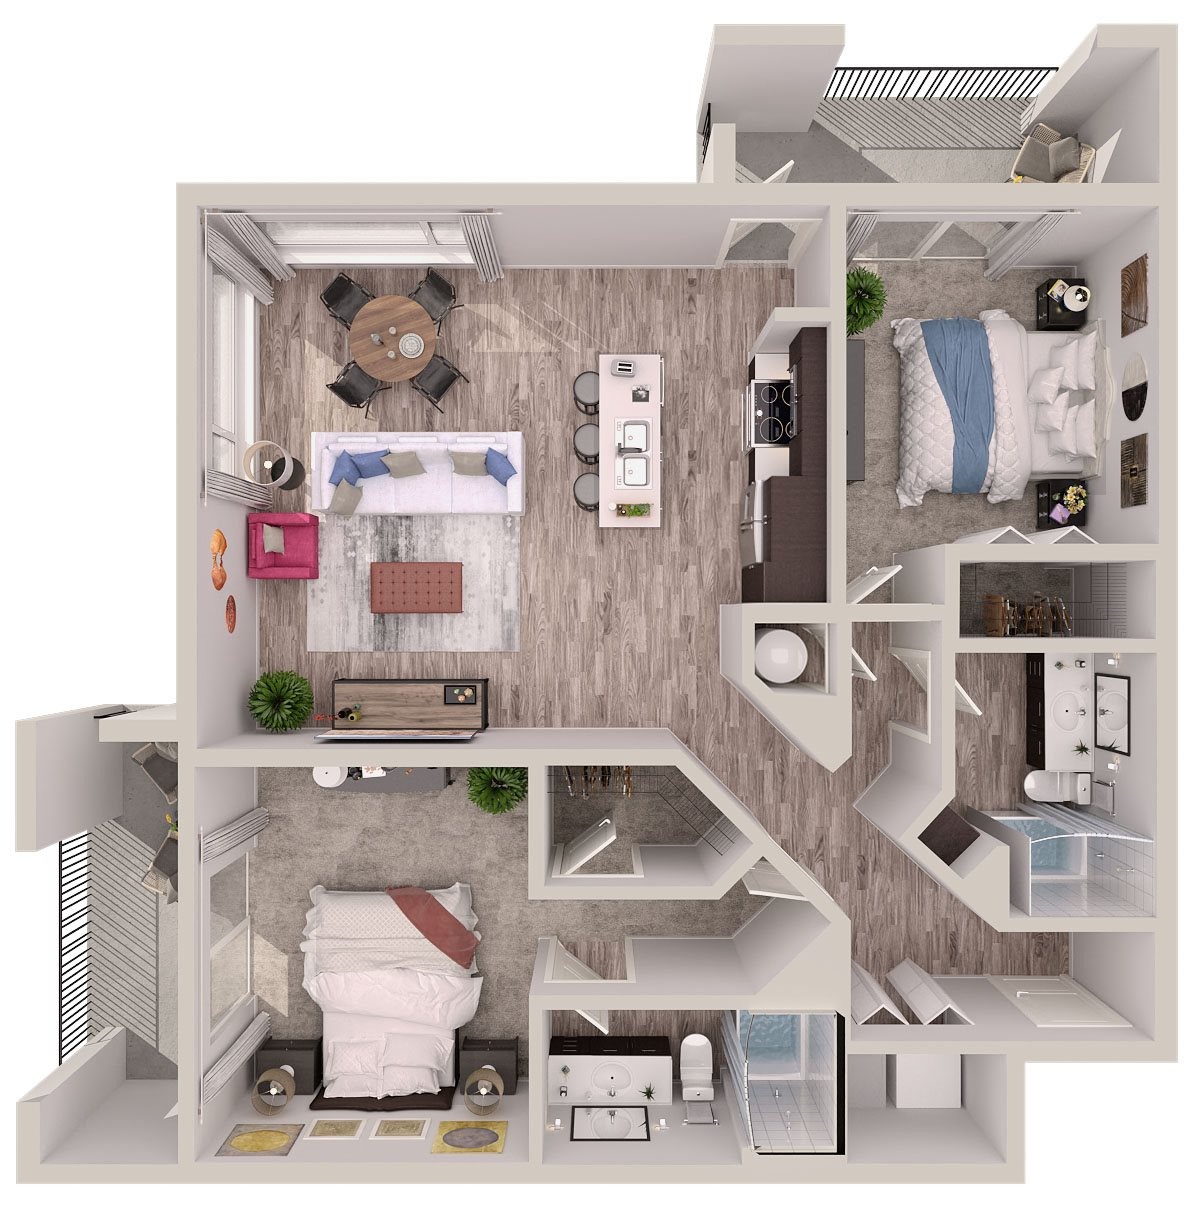 B2 Floor Plan at SofA Downtown Luxury Apartments, Delray Beach, FL, 33483